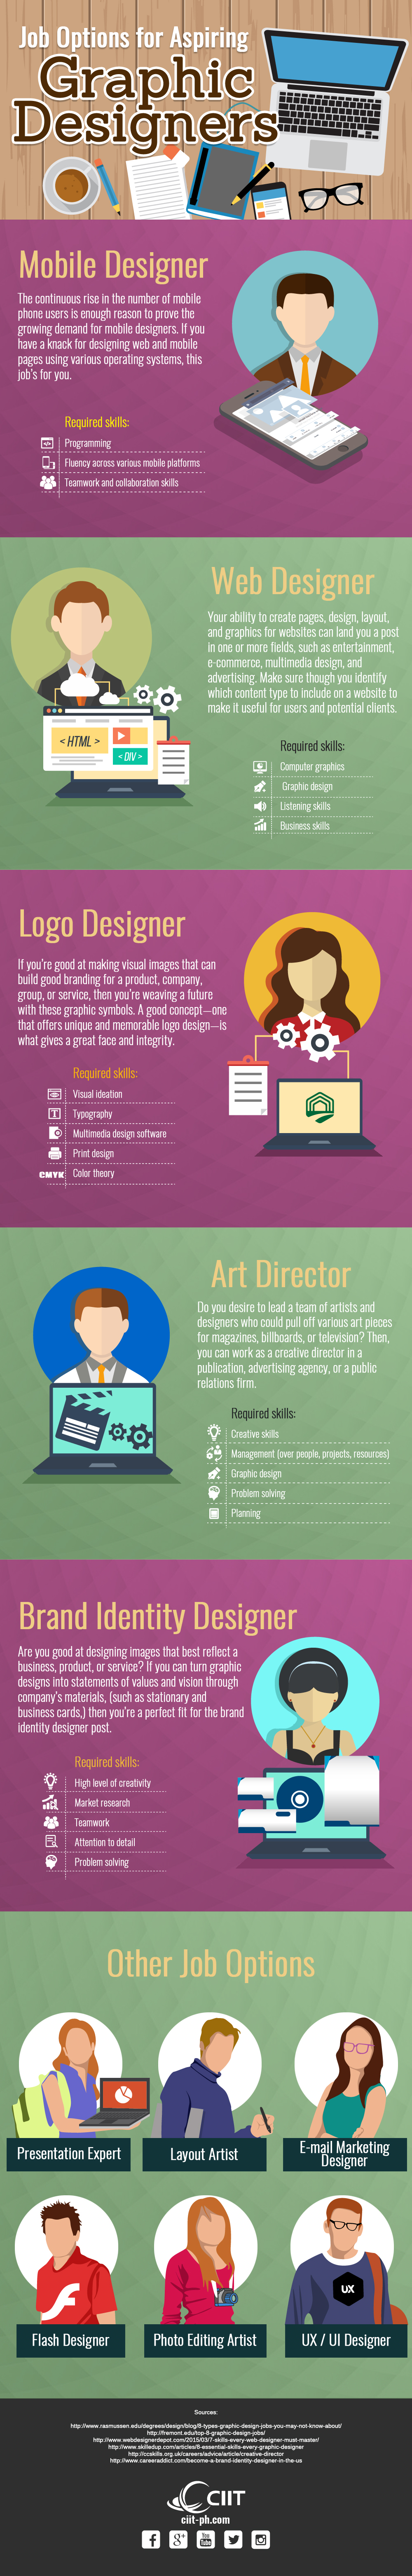 graphic design school: infographic